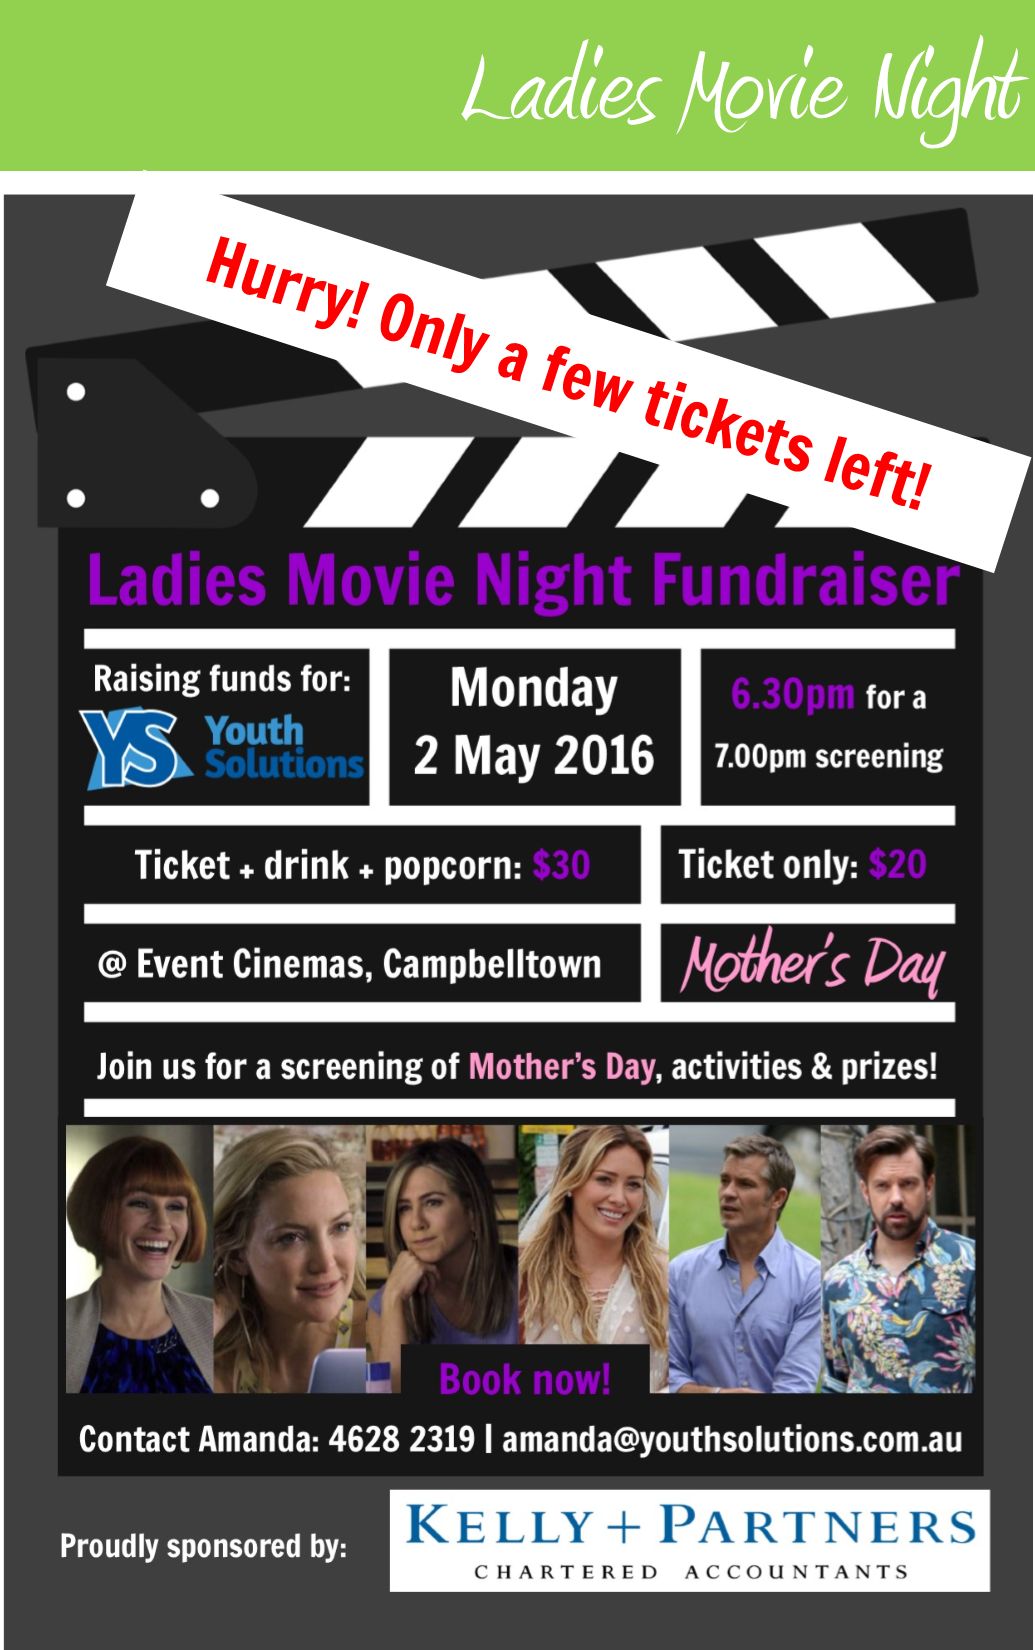 Only a few tickets left for the YS Ladies Movie Night!